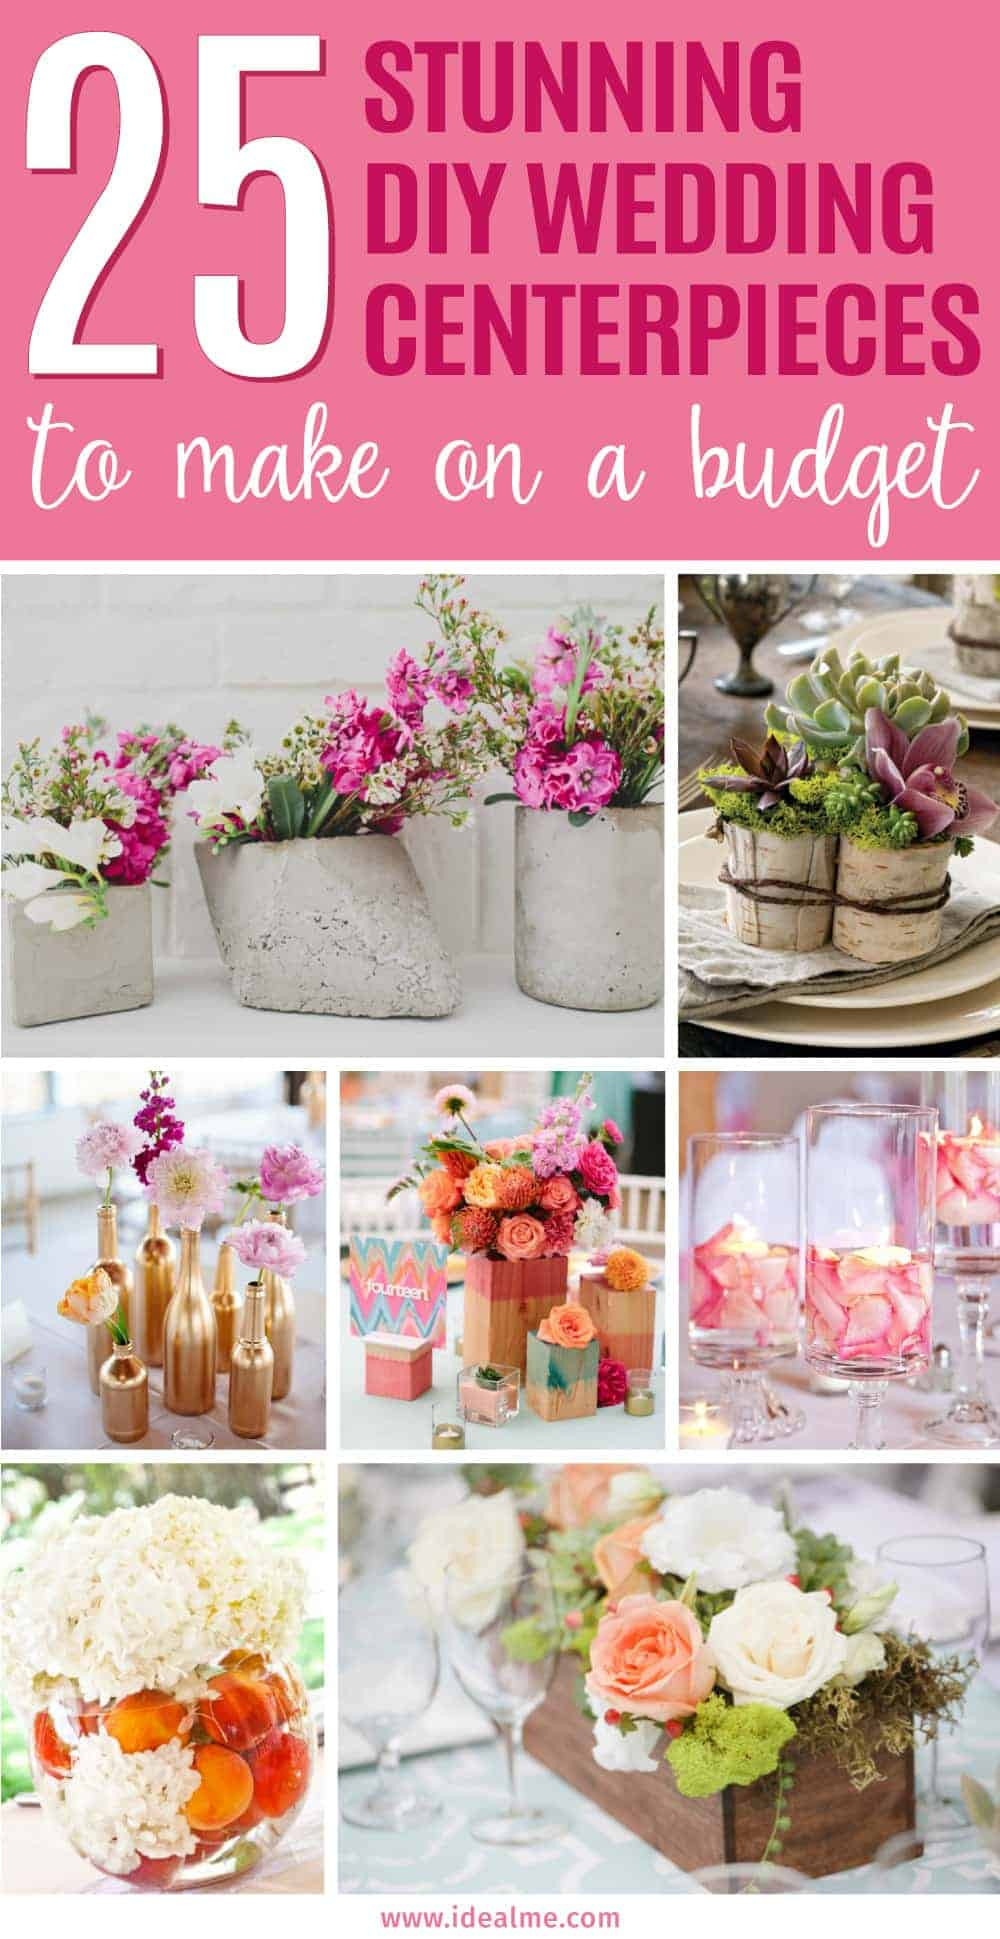 Best ideas about DIY Centerpieces For Wedding . Save or Pin 25 Stunning DIY Wedding Centerpieces to Make on a Bud Now.